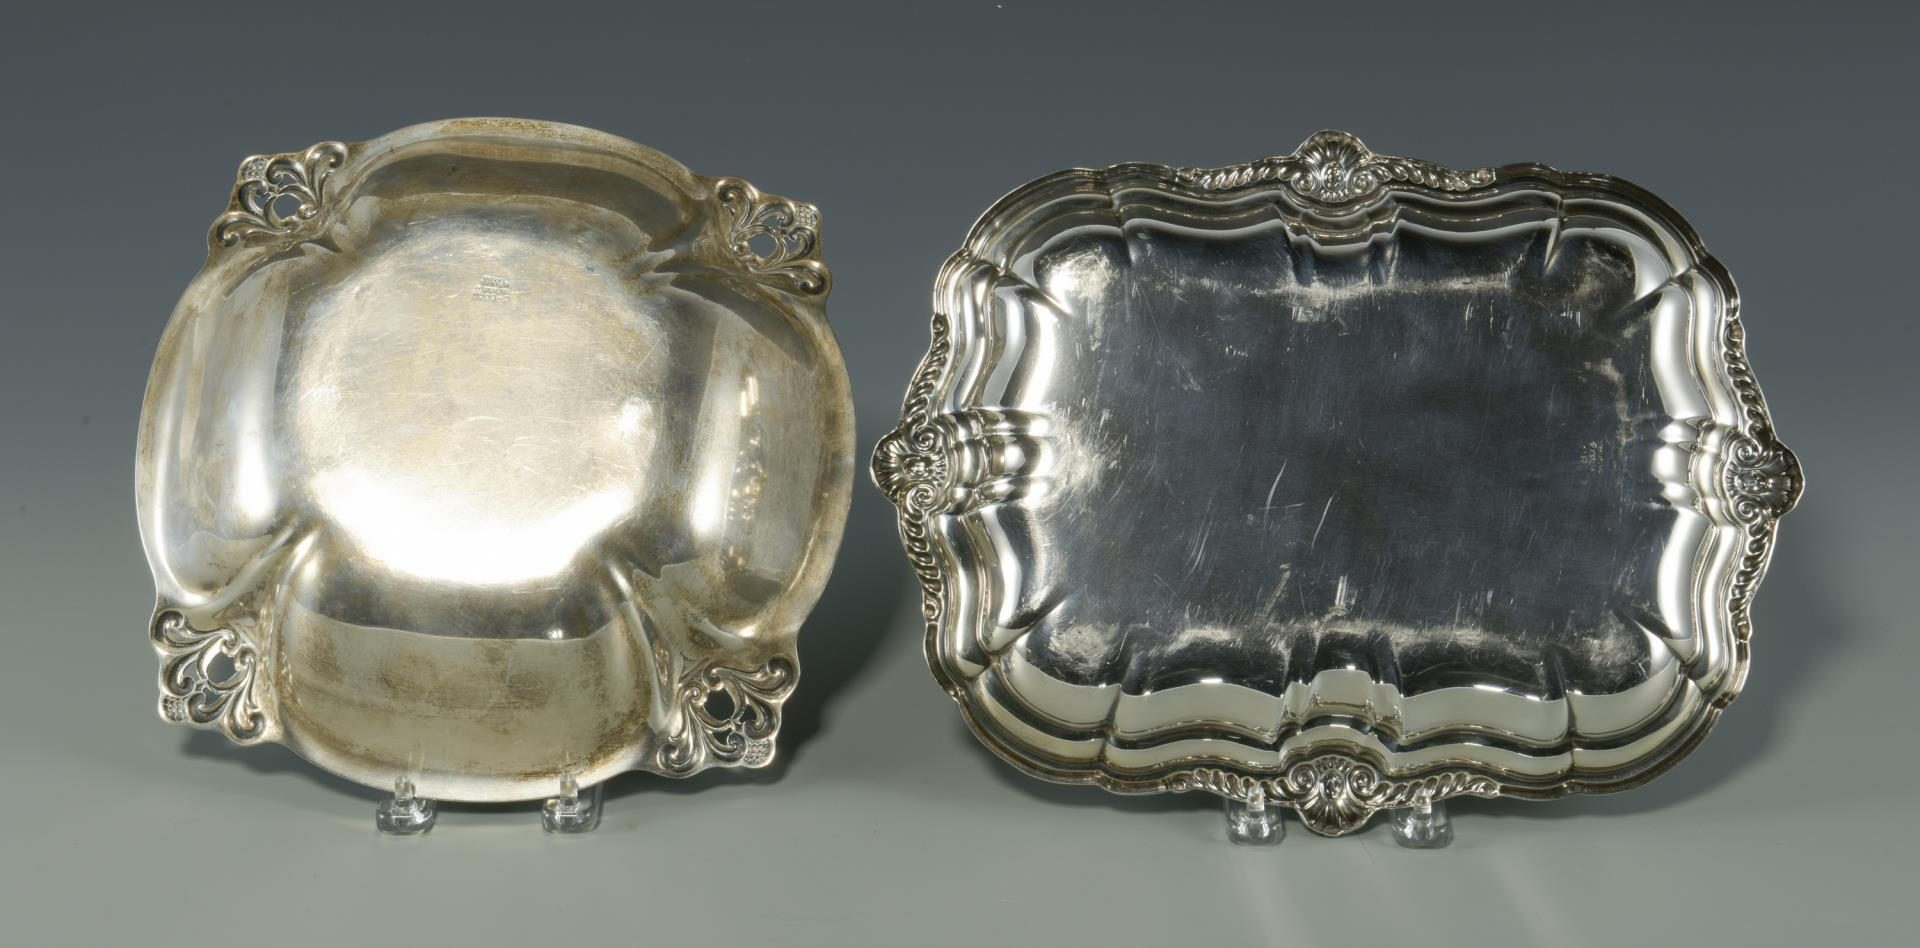 Lot 5: International Sterling Silver Tray & Royal Danish Silver Bowl